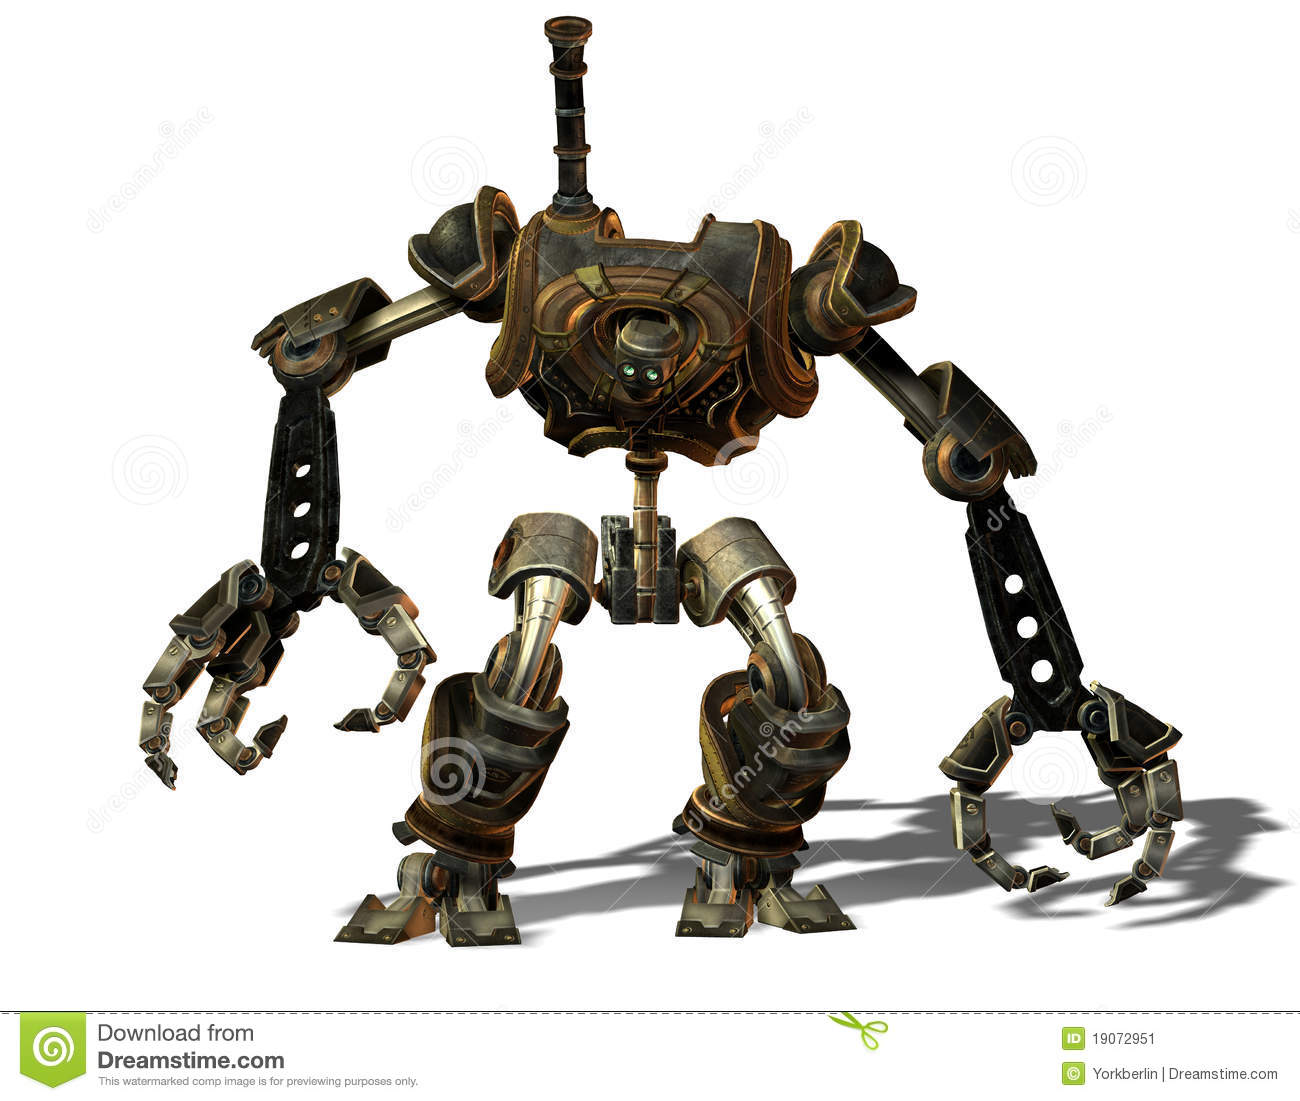 Steampunk robot from the future